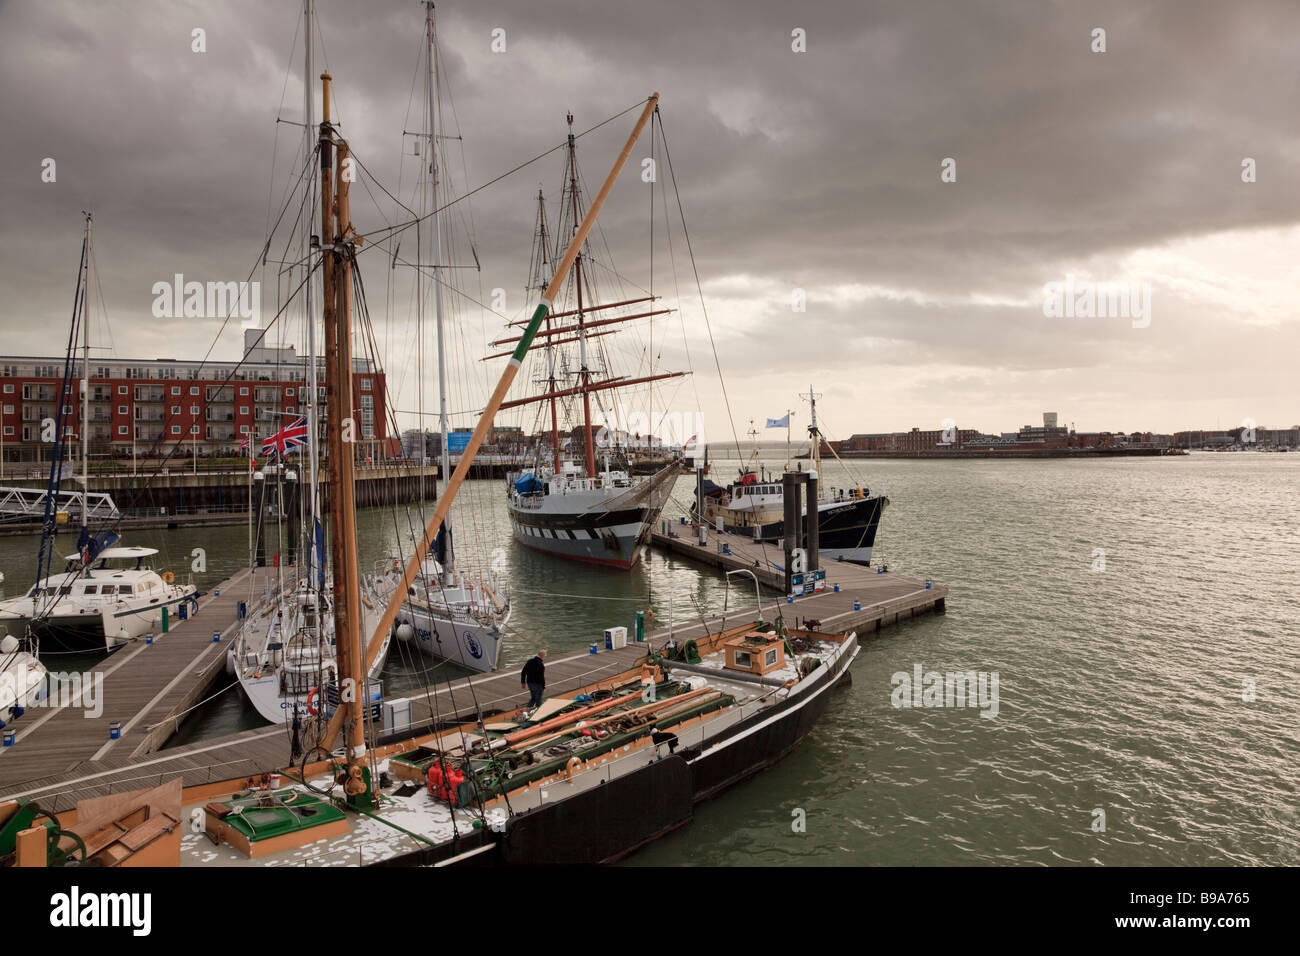 Sunset over traditional sailing vessels Gunwharf Quays Portsmouth - Stock Image